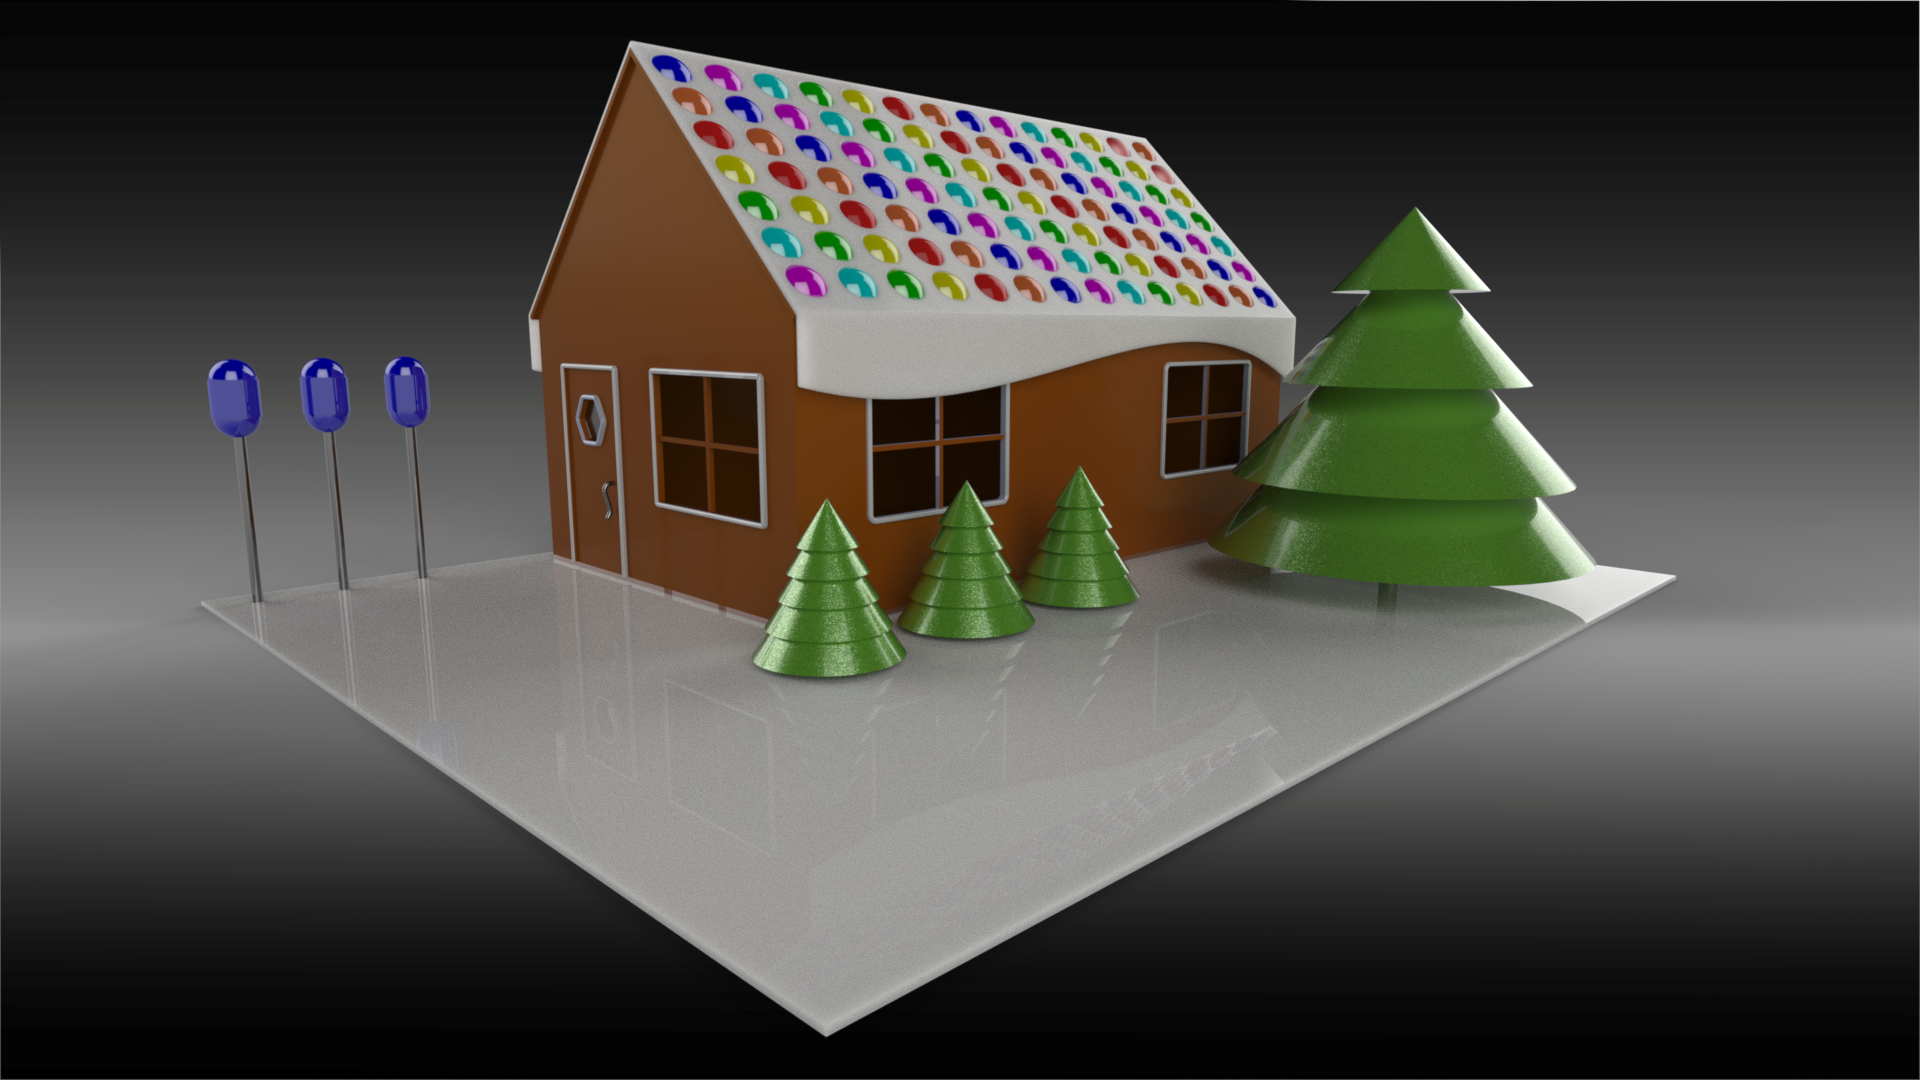 Solidworks magnetic mates make gingerbread house design easy - Make your house a home ...